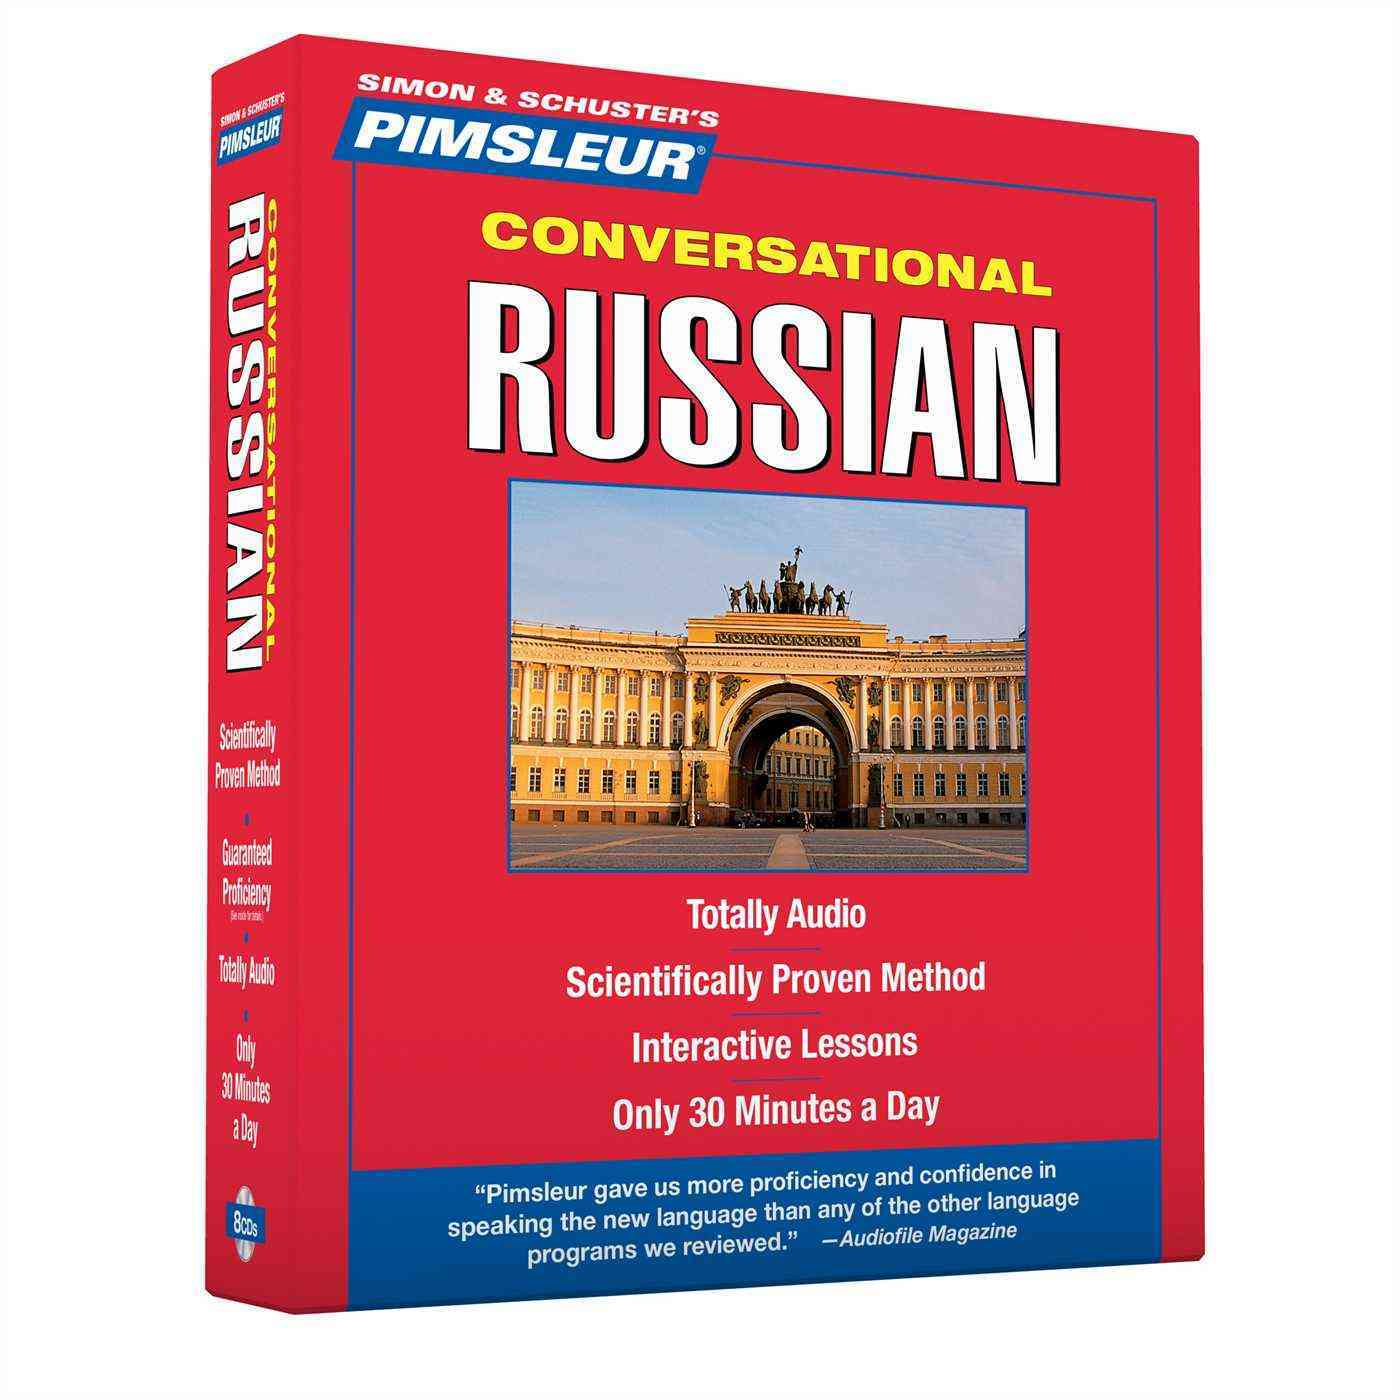 [CD] Pimsleur Conversational Russian